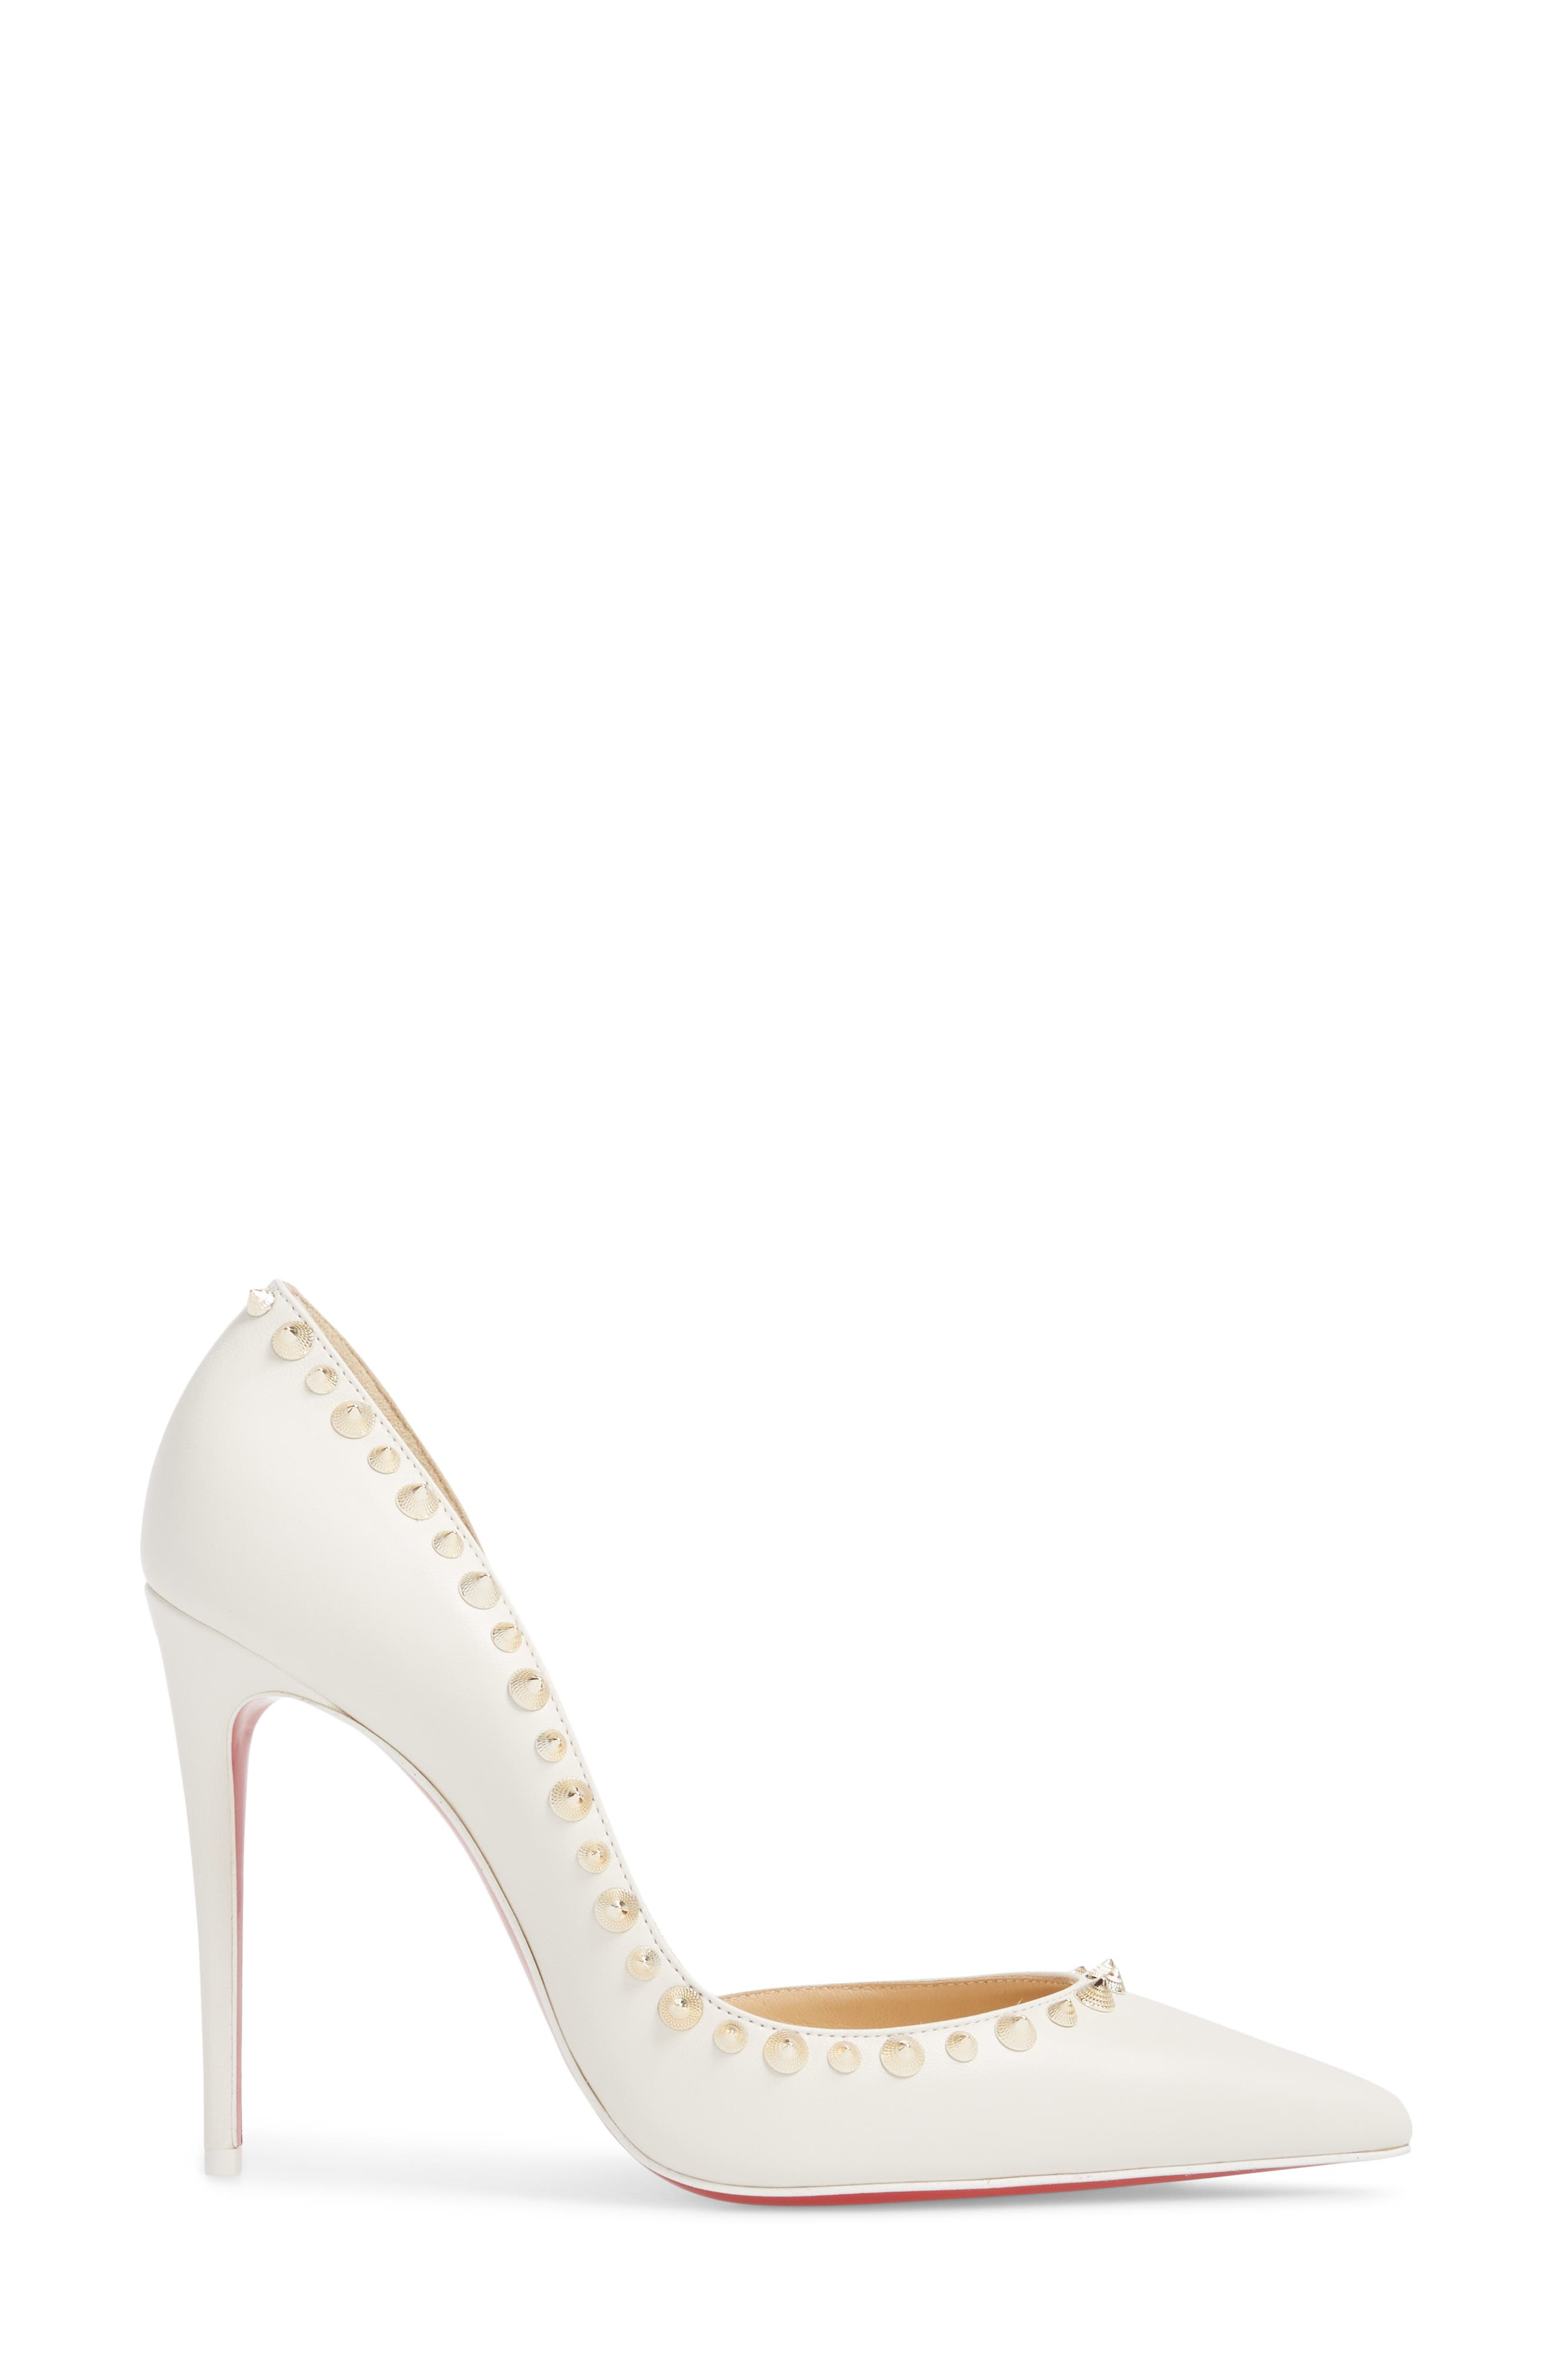 Irishell Spiked Half d'Orsay Pump,                             Alternate thumbnail 3, color,                             LATTE/ WHITE GOLD